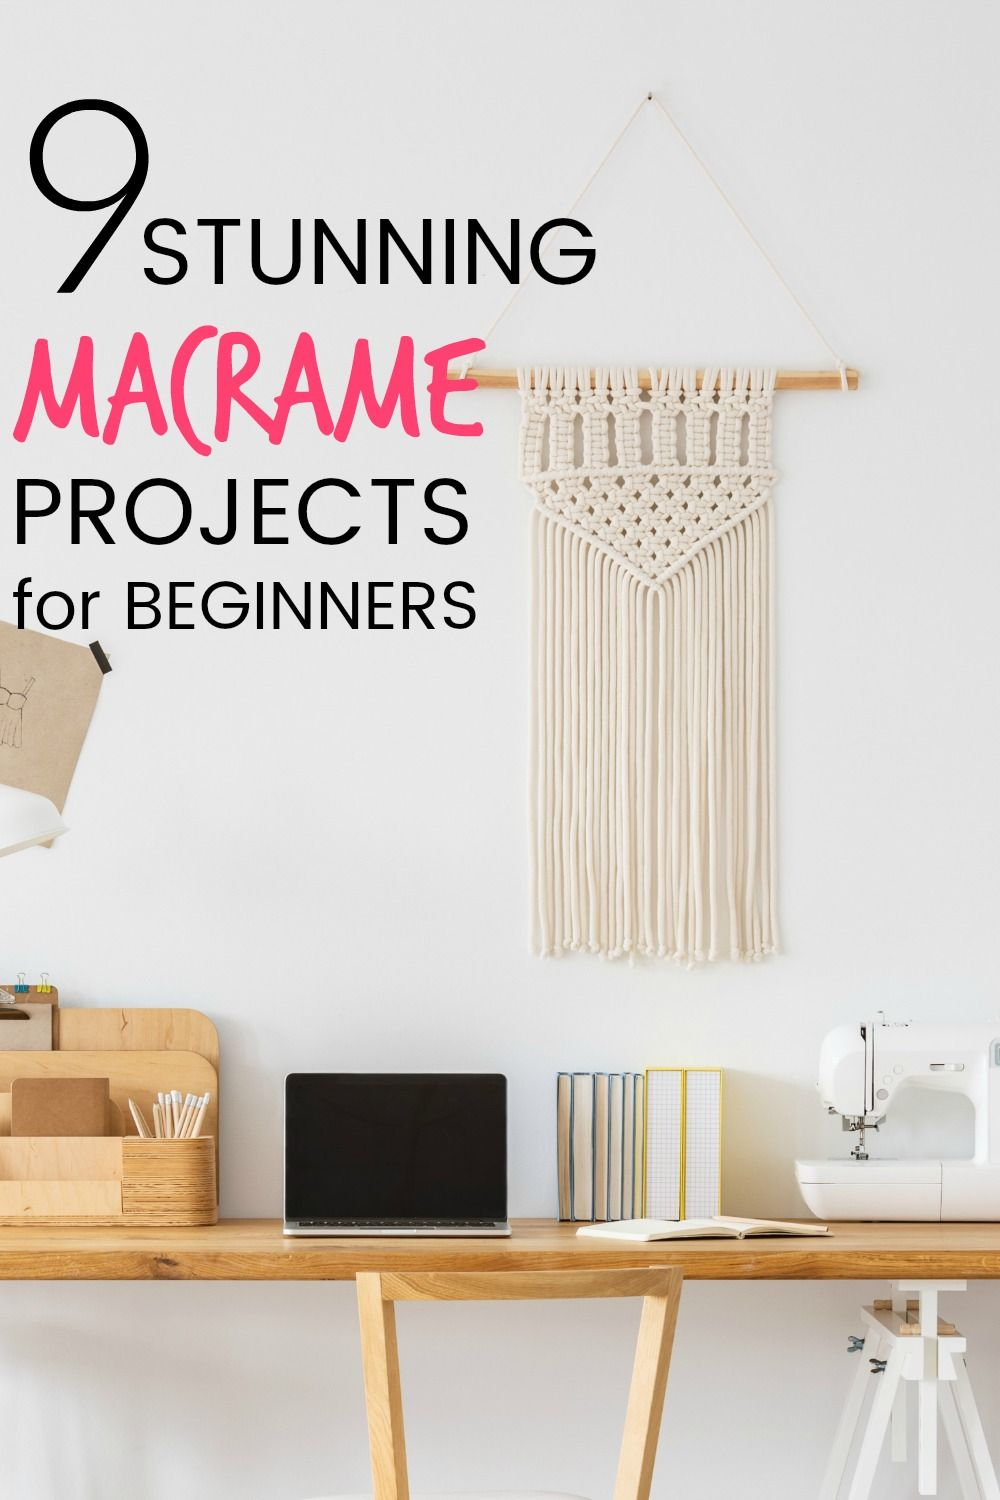 Macrame is back BABY! And it's not that hard to do. I've found 9 Stunning Macrame Projects that are perfect for beginners.